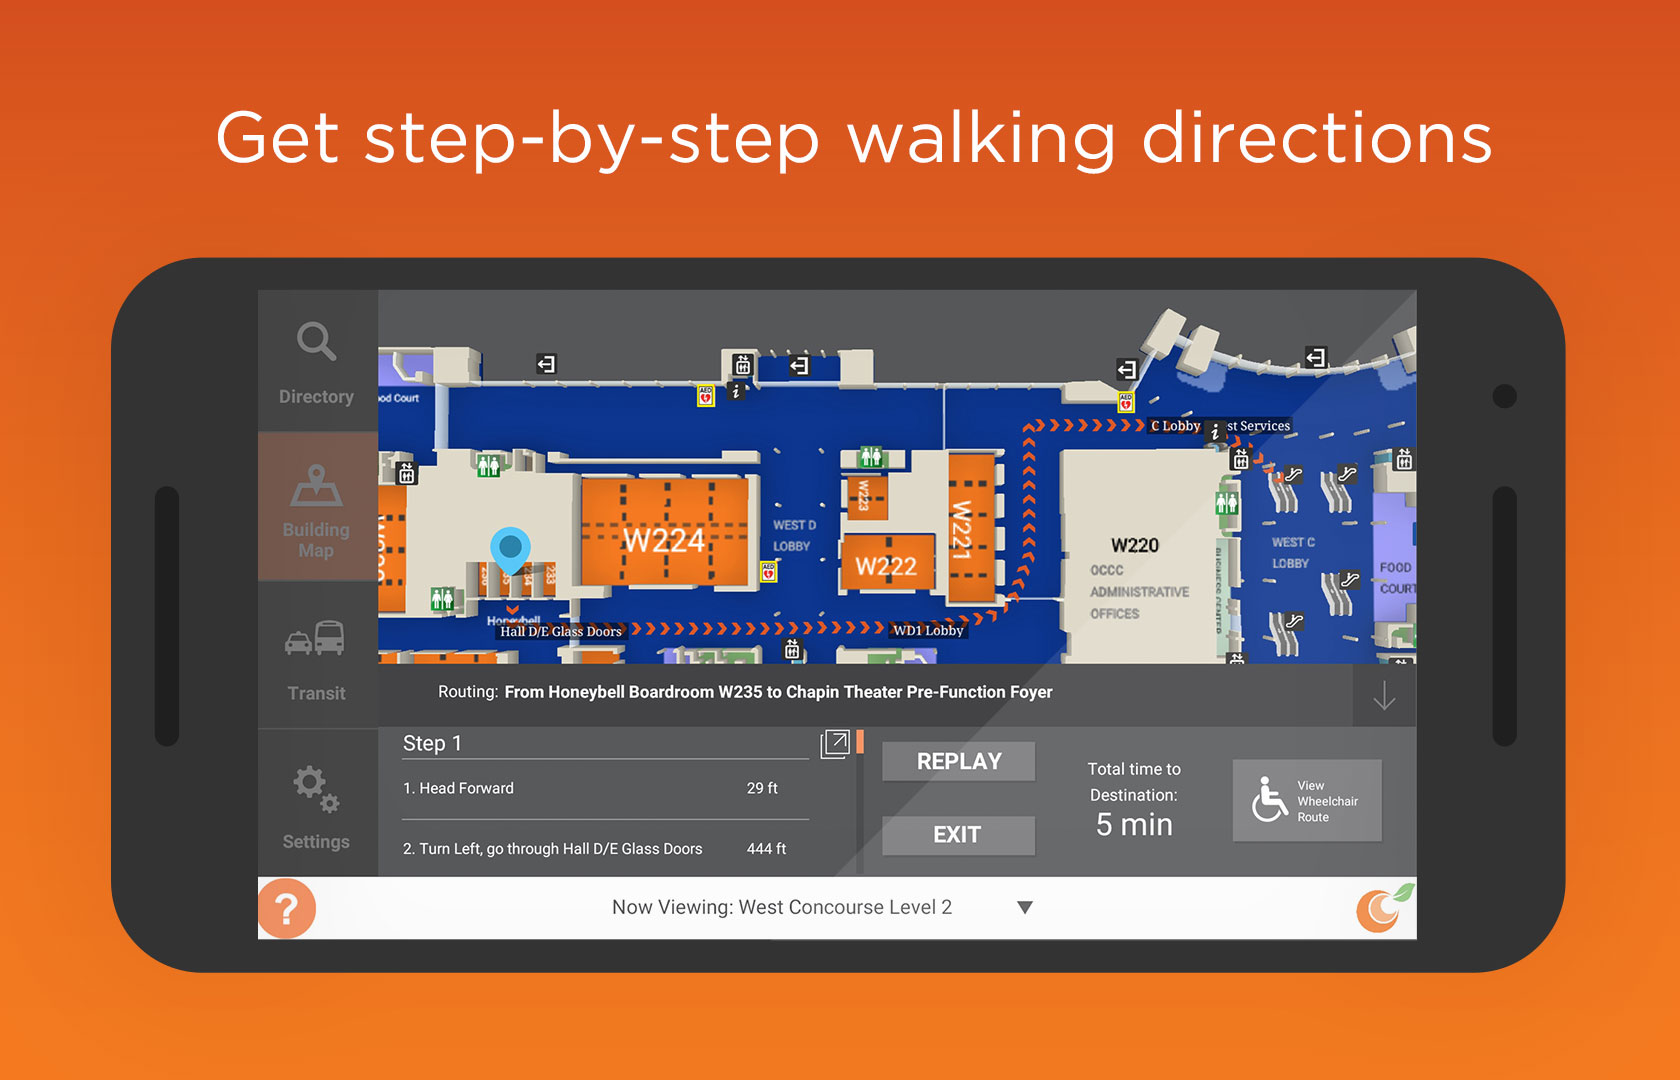 Get step-by-step walking directions